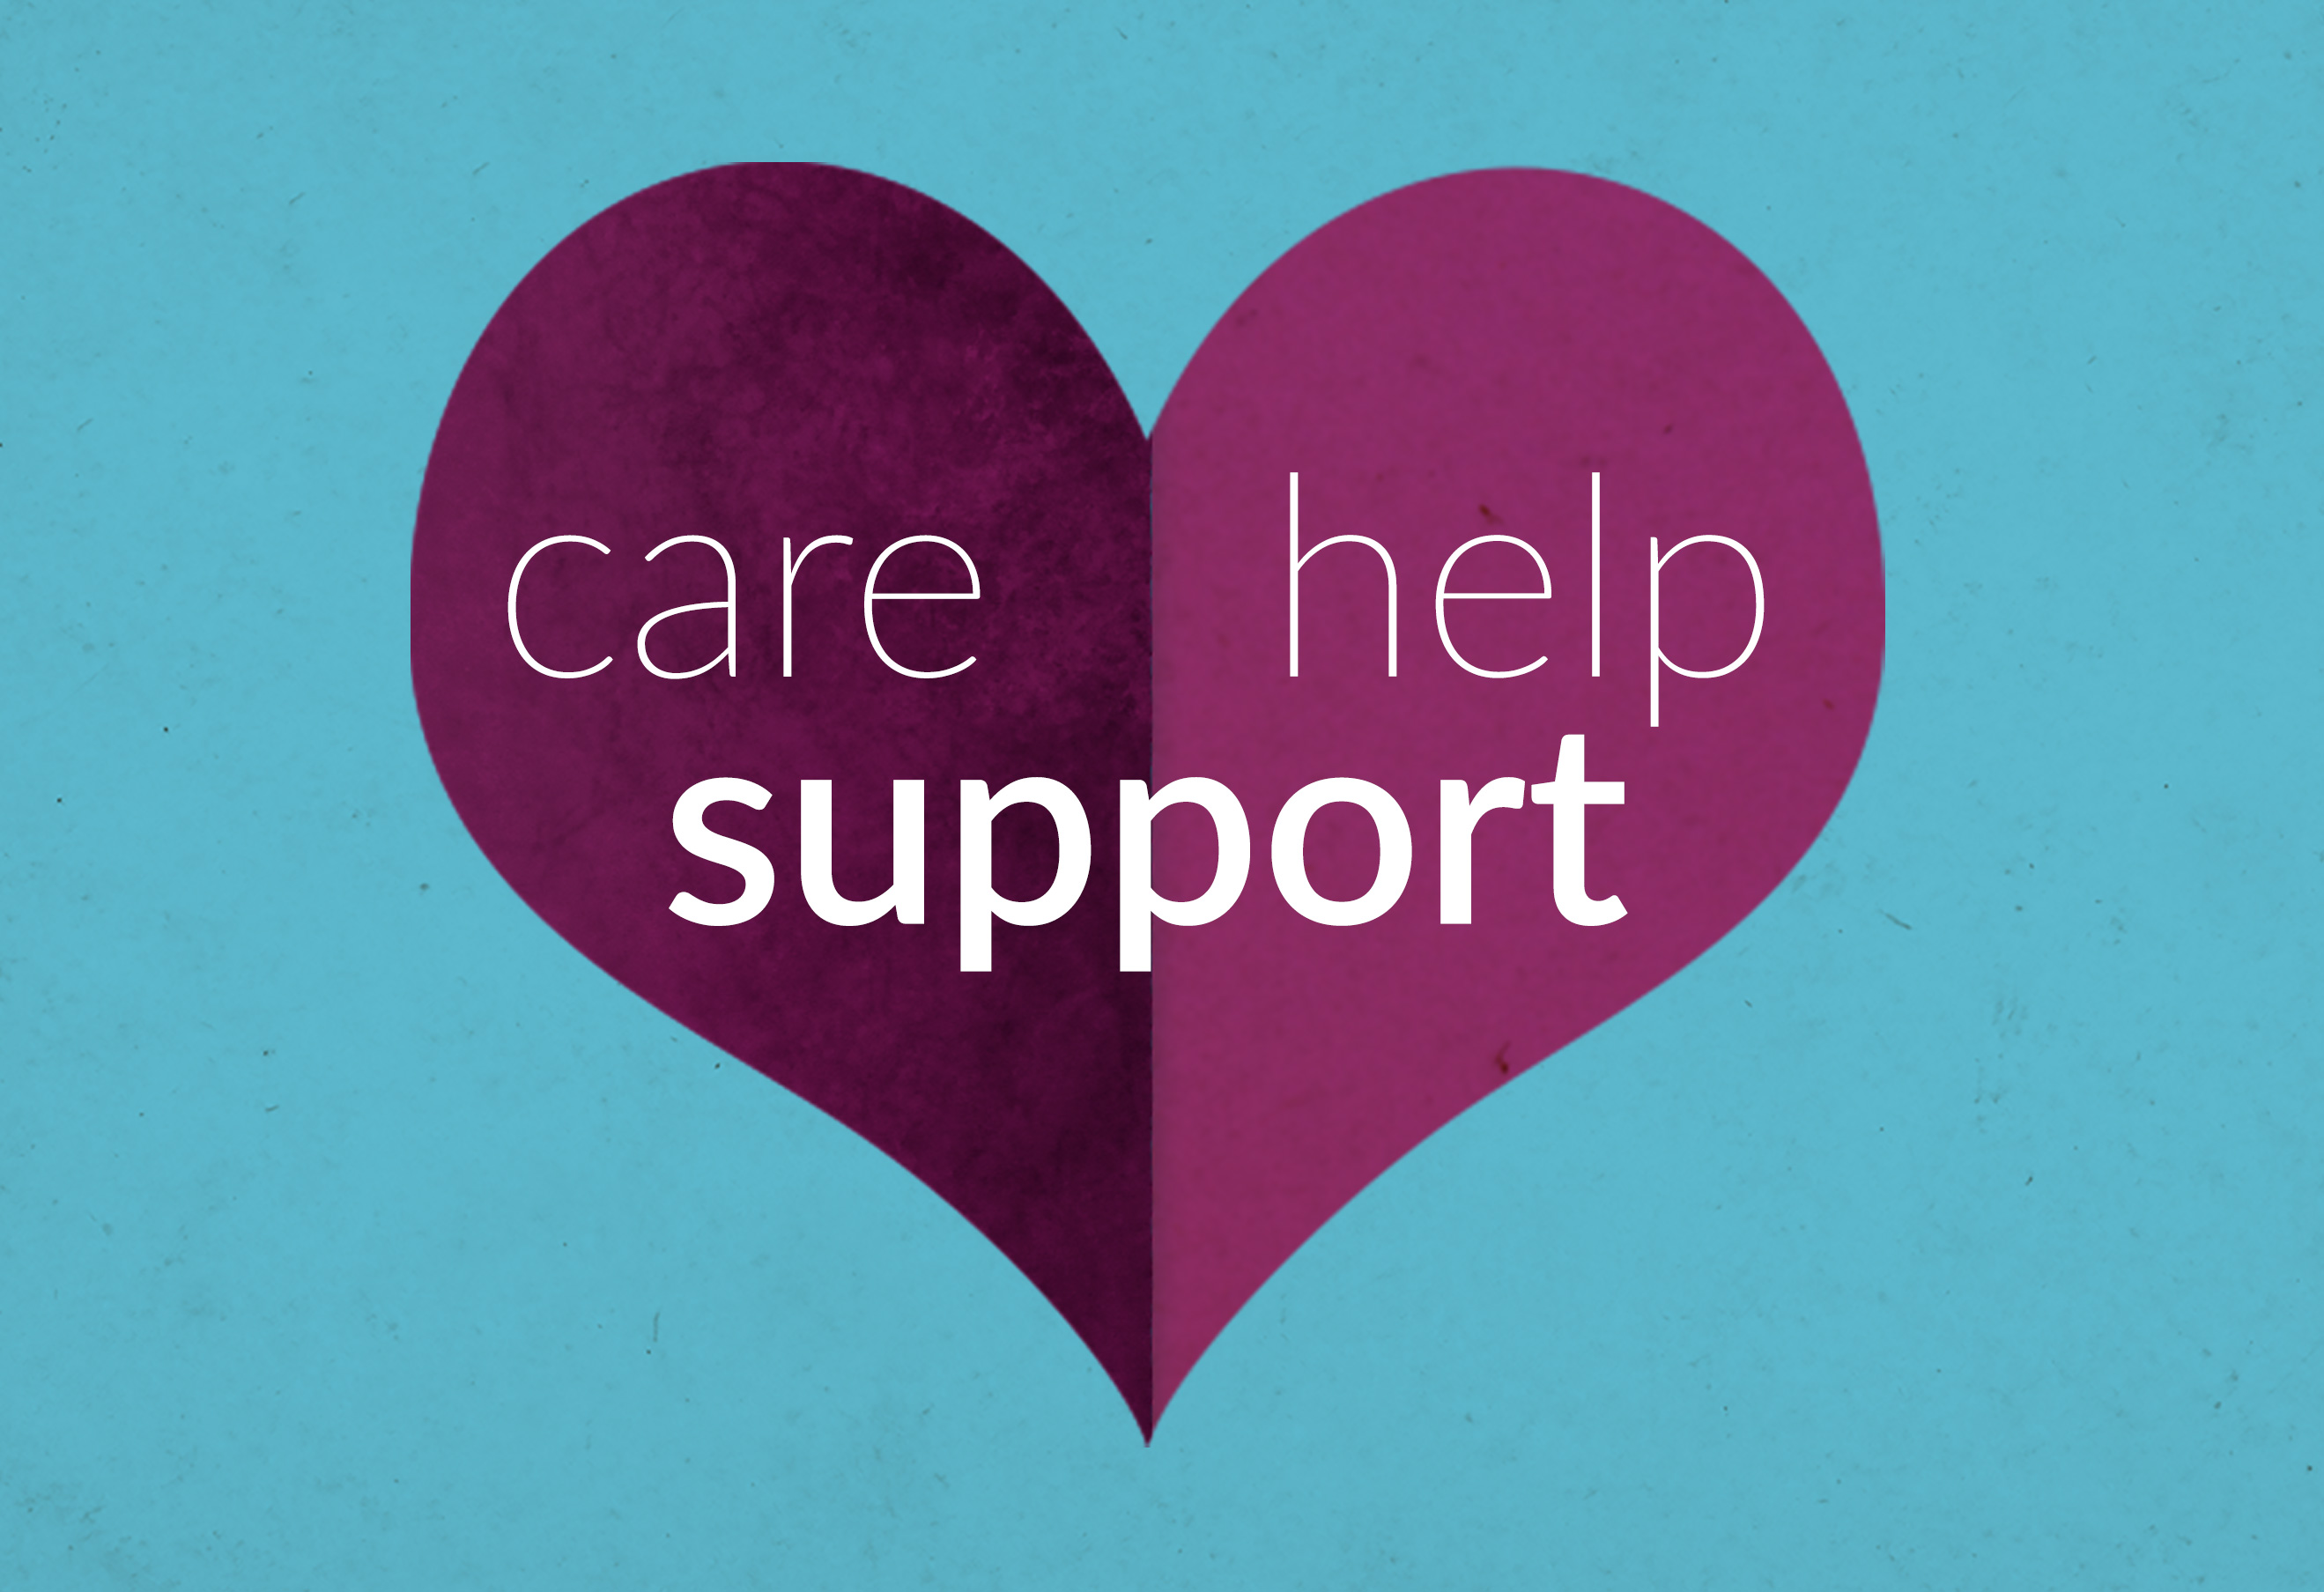 care, hope, support